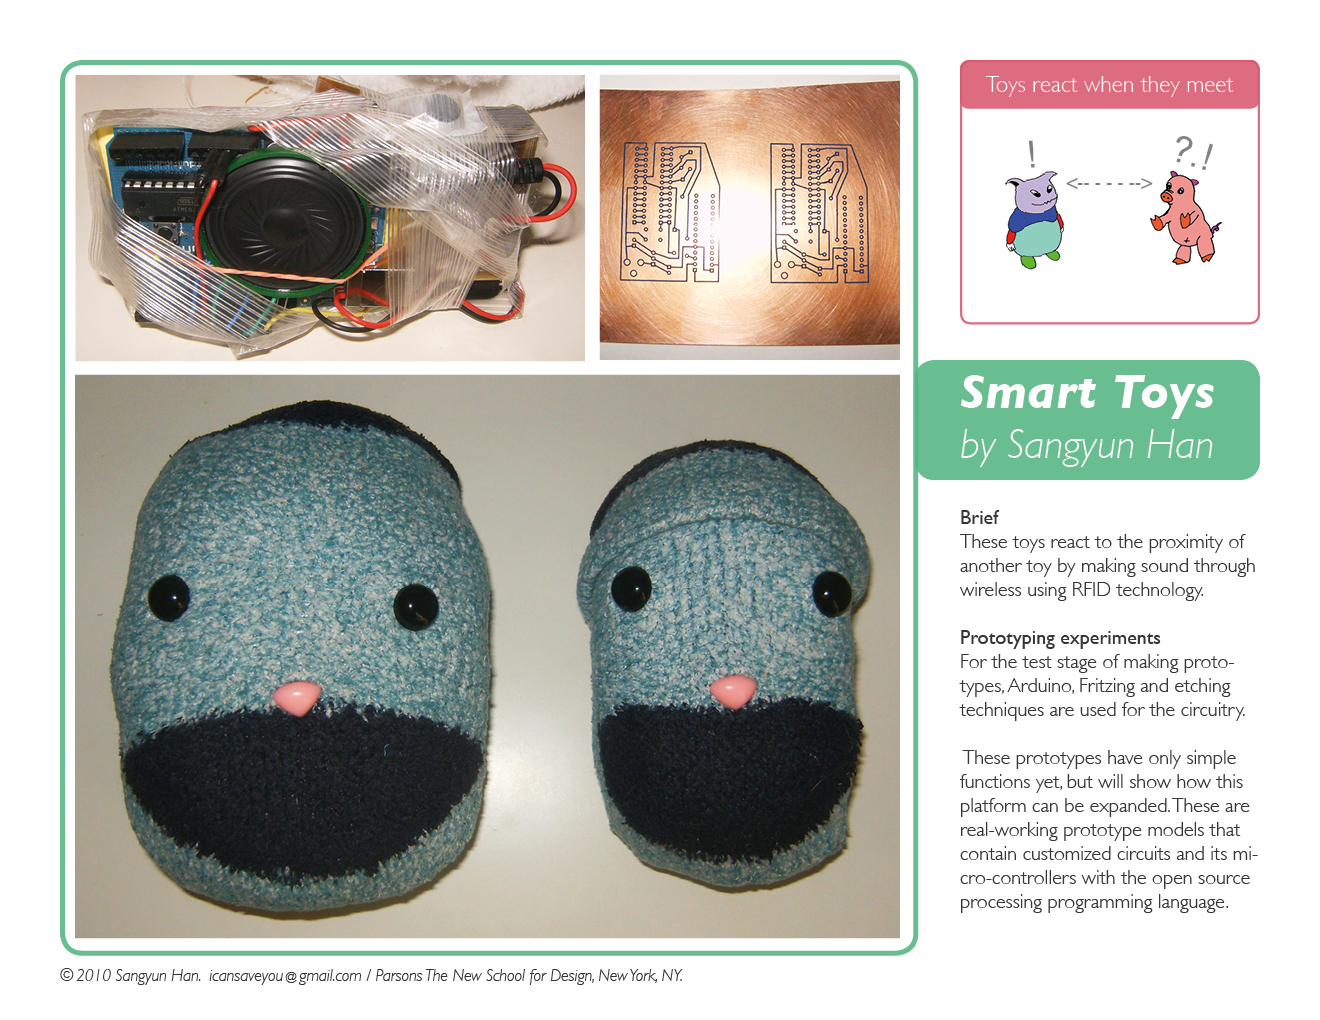 Smart Toys by Sangyun Han (c) 2010.